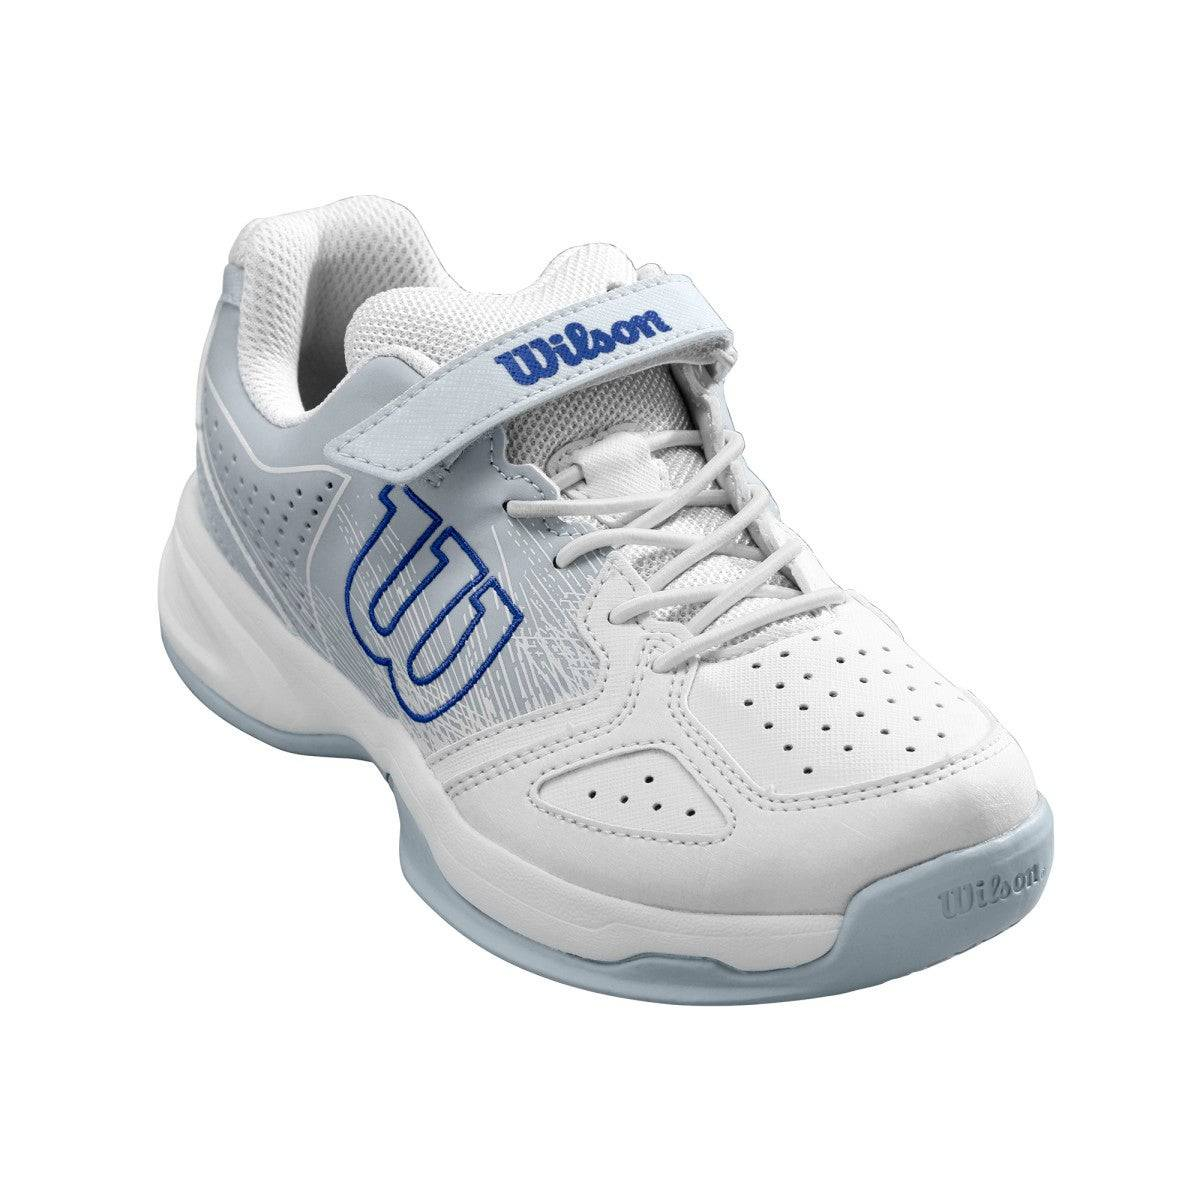 Wilson Junior Kaos K Tennis Shoes in White / Pearl Blue / Dazzling Blue - Size: 11 Y  - Unisex - White/Pearl Blue/Dazzling Blue - Size: 11 Y